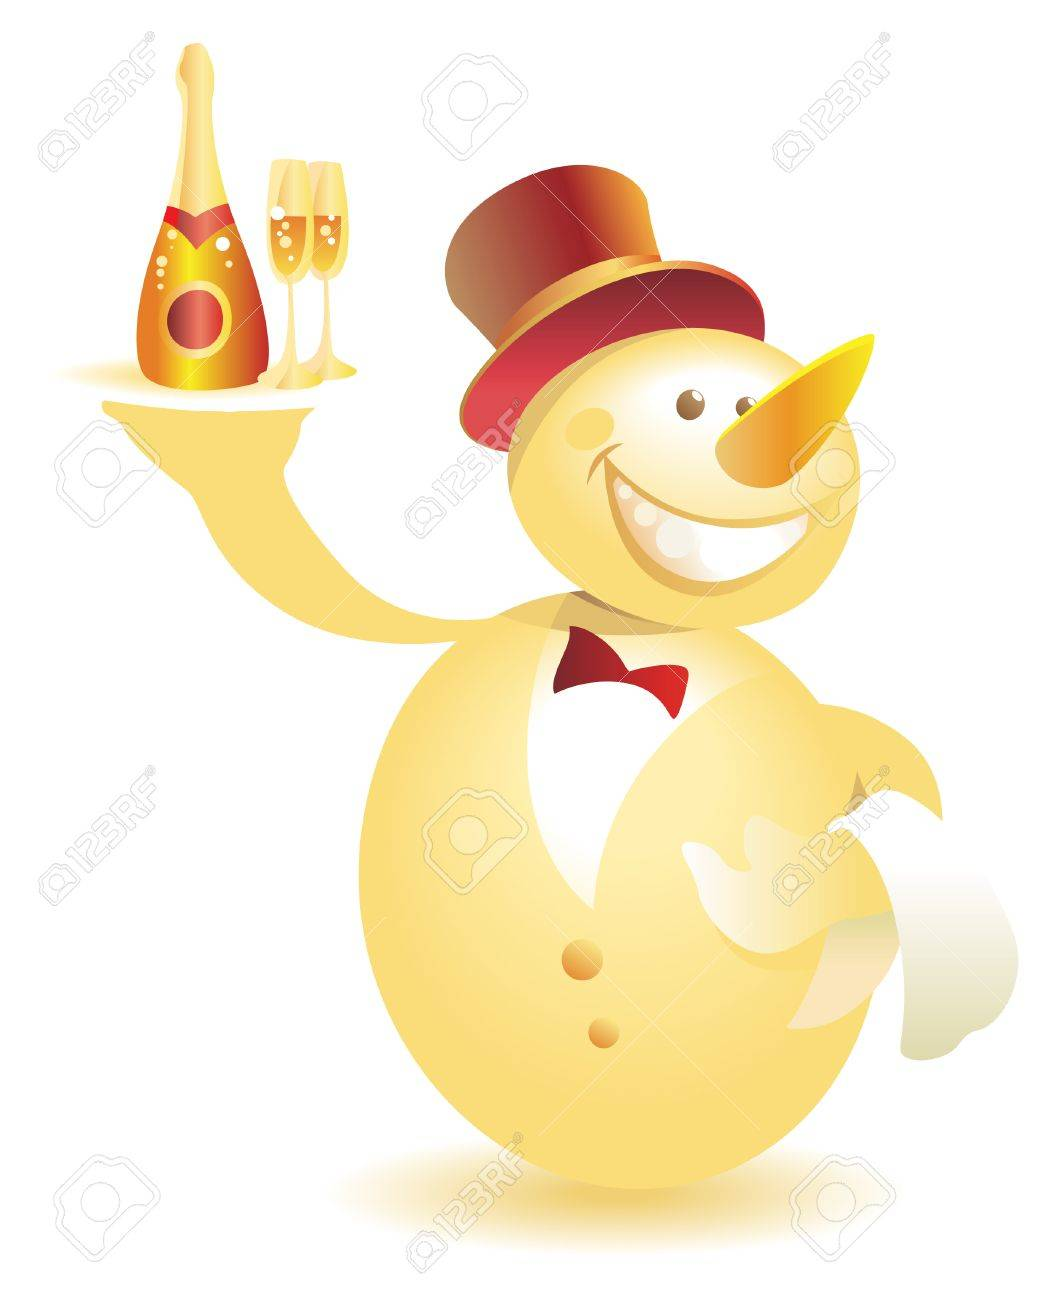 Snowman-waiter with champagne. Vector illustration. Stock Vector - 5687224